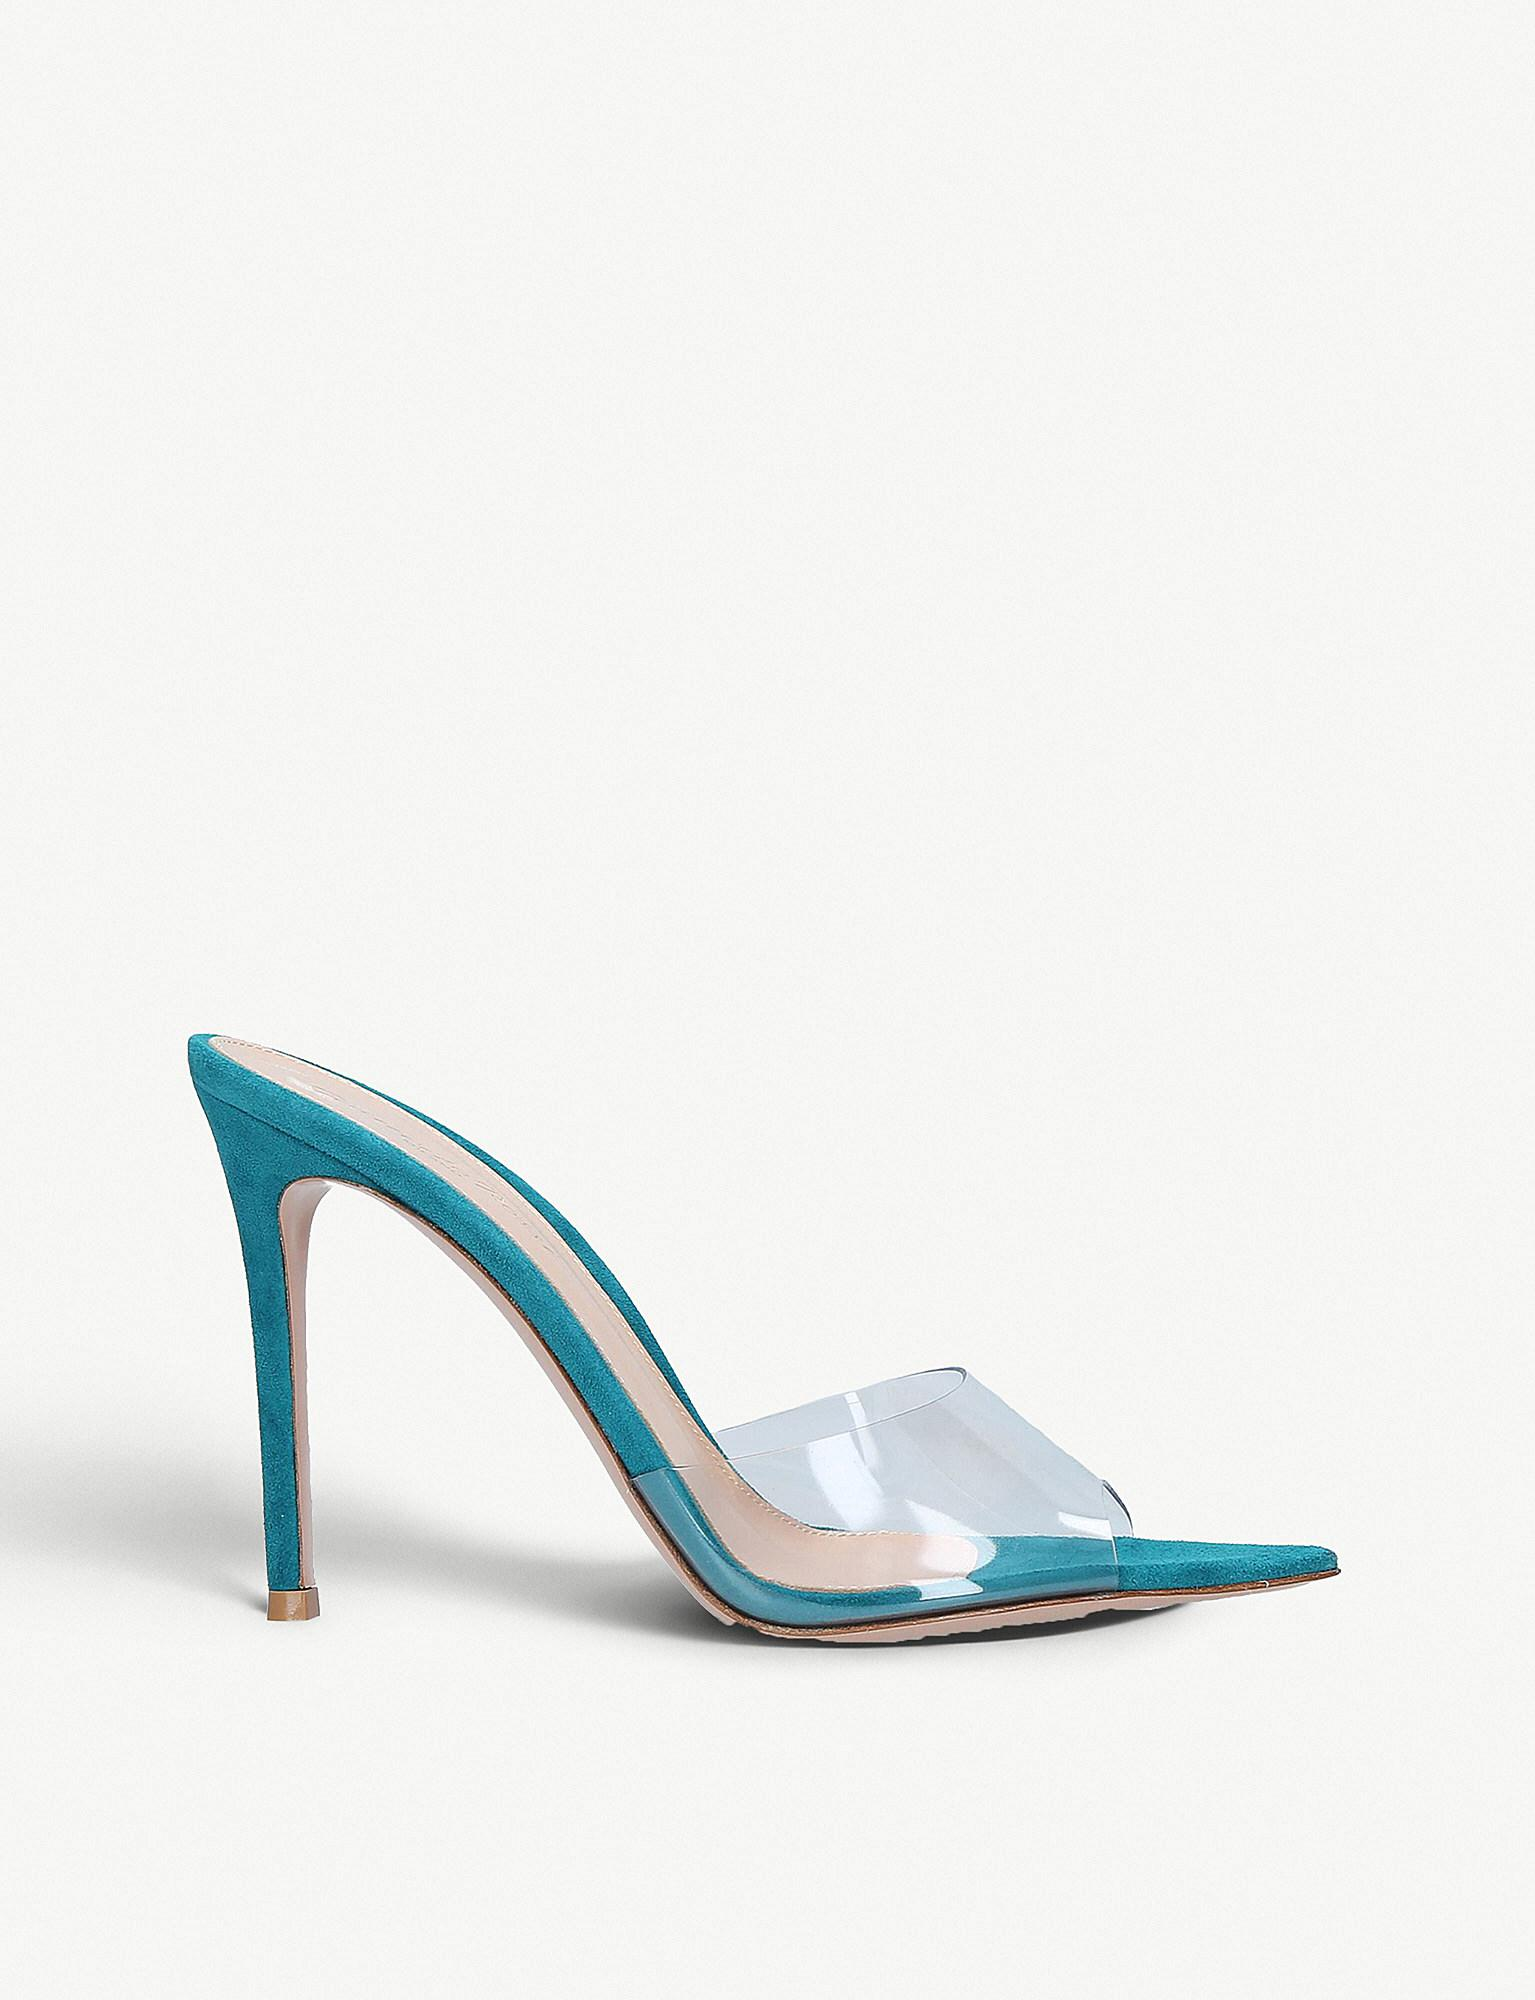 9e848c7ae77 Gianvito Rossi Elle 105 Patent-leather And Pvc Mules in Blue - Lyst